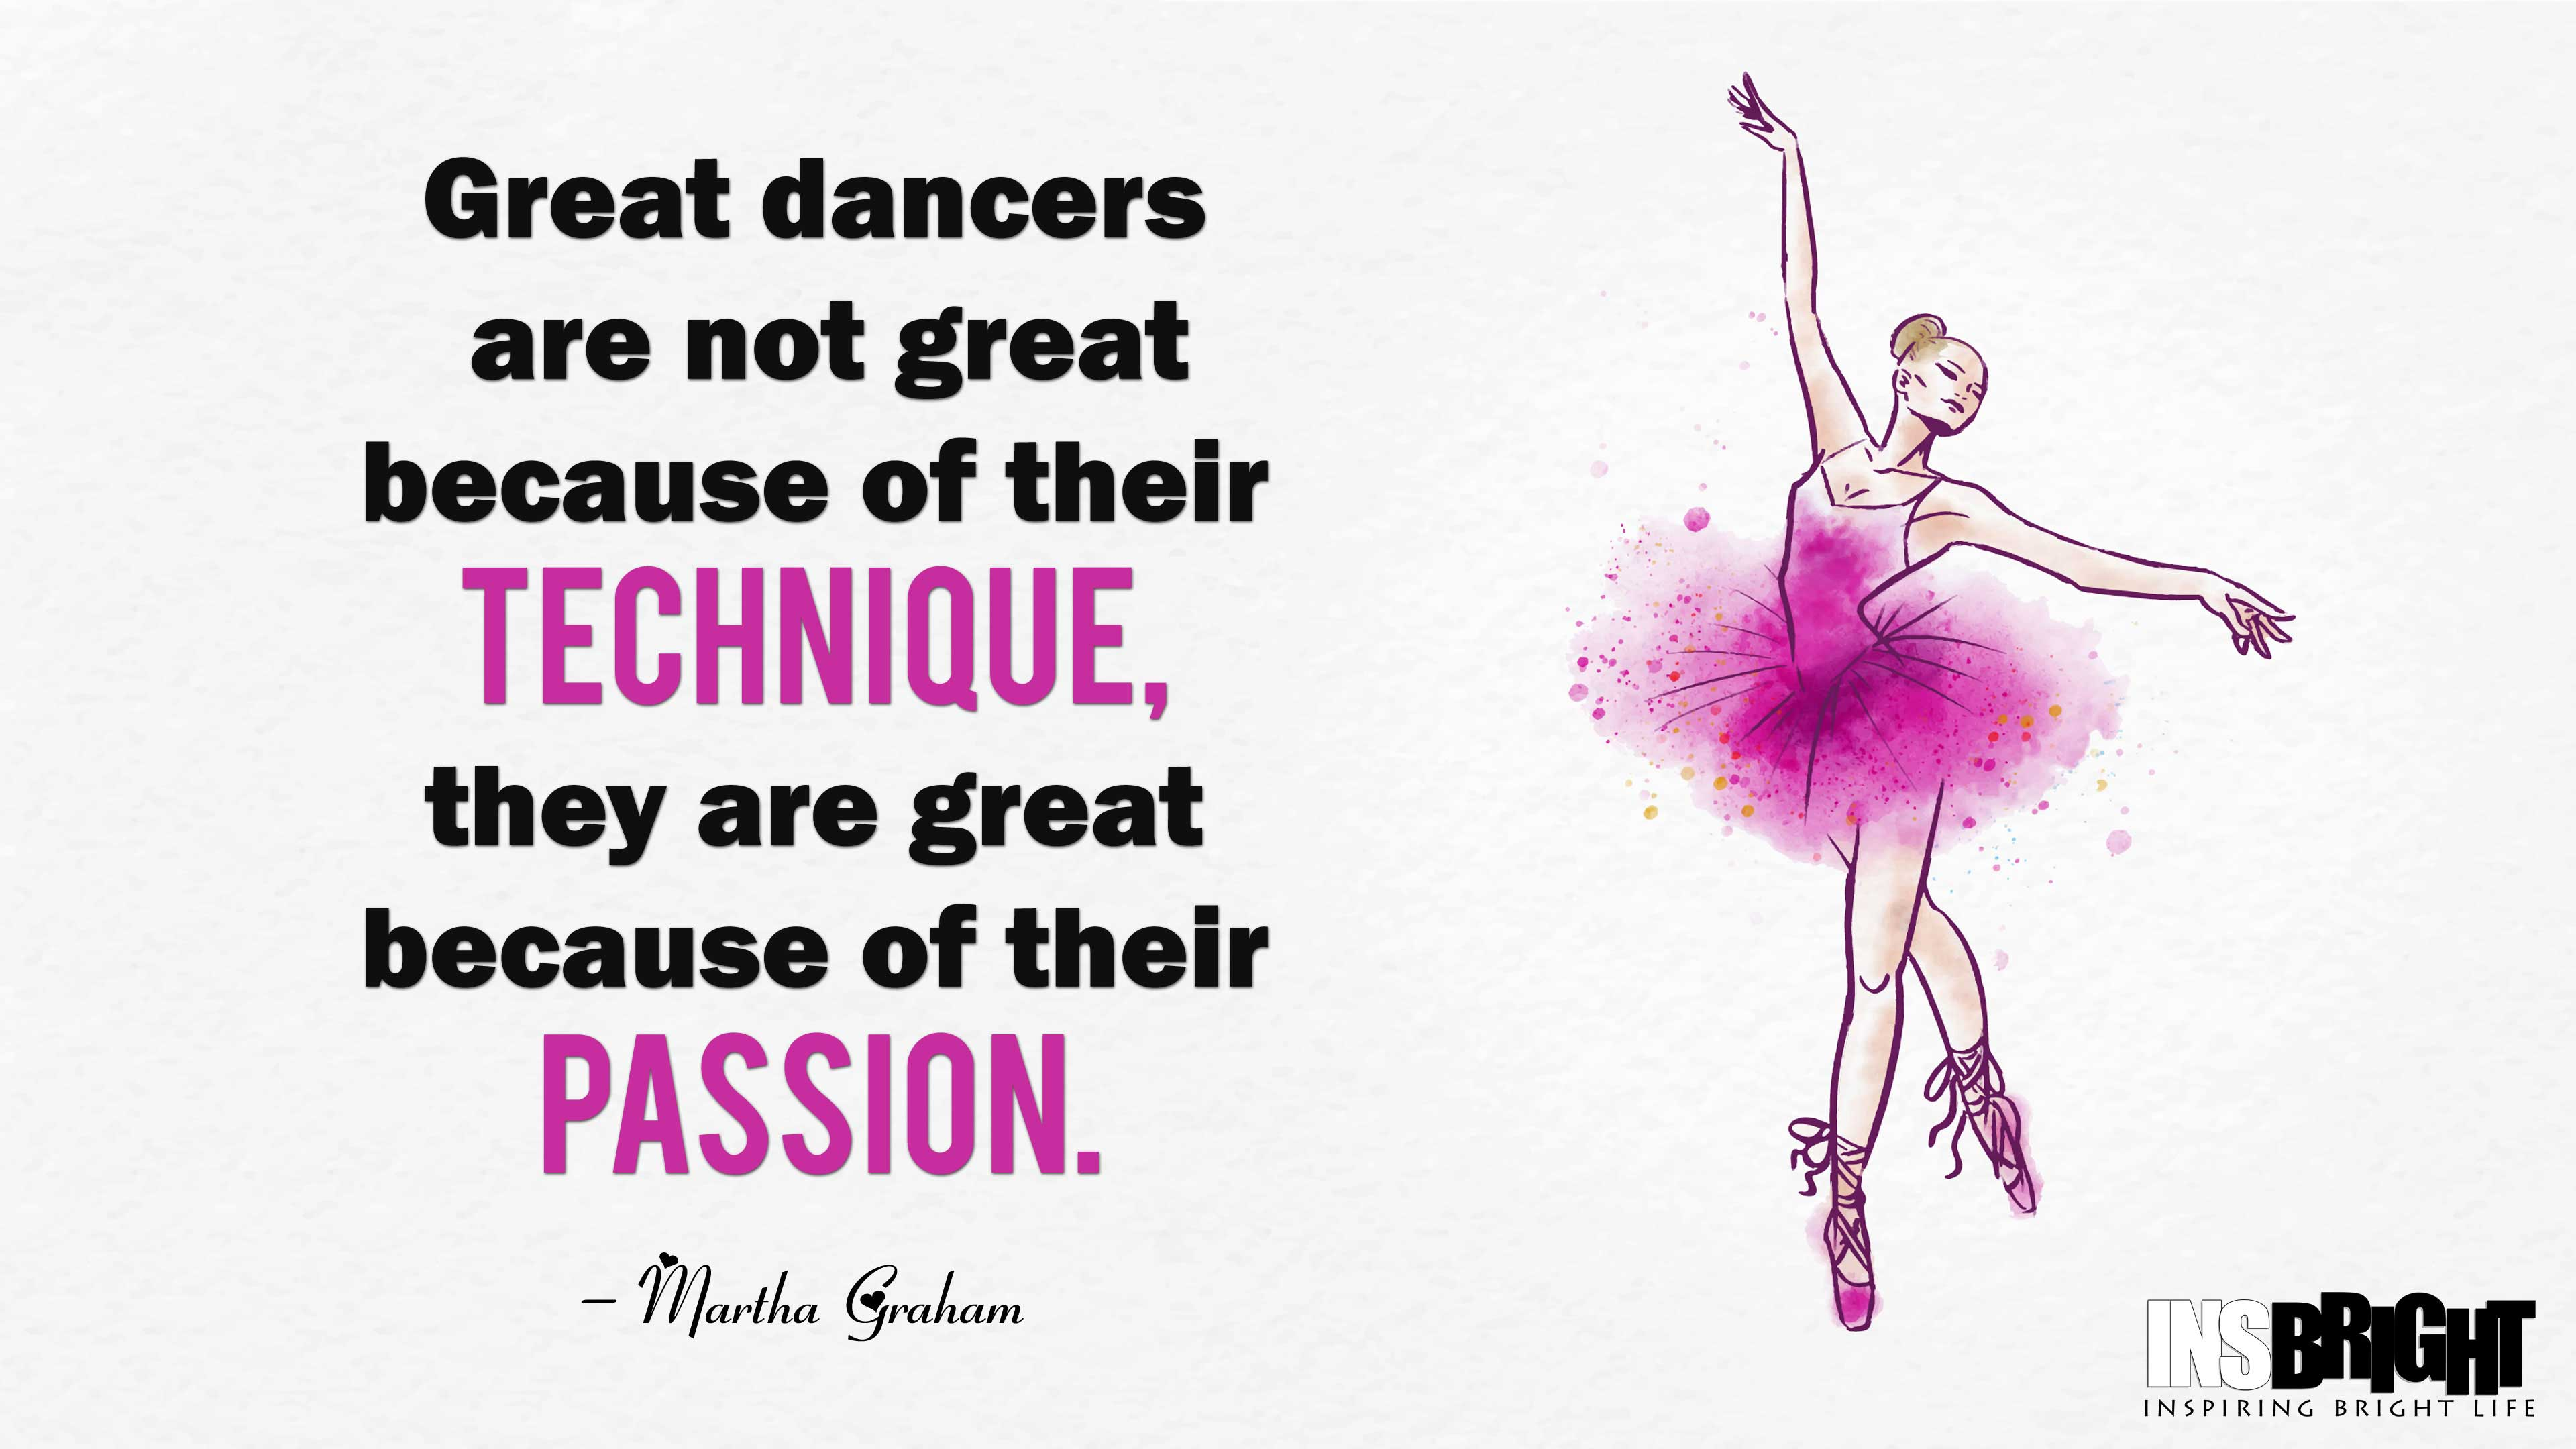 Famous Short Quotes About Life 10 Inspirational Dance Quotes Imagesfamous Dancer  Insbright